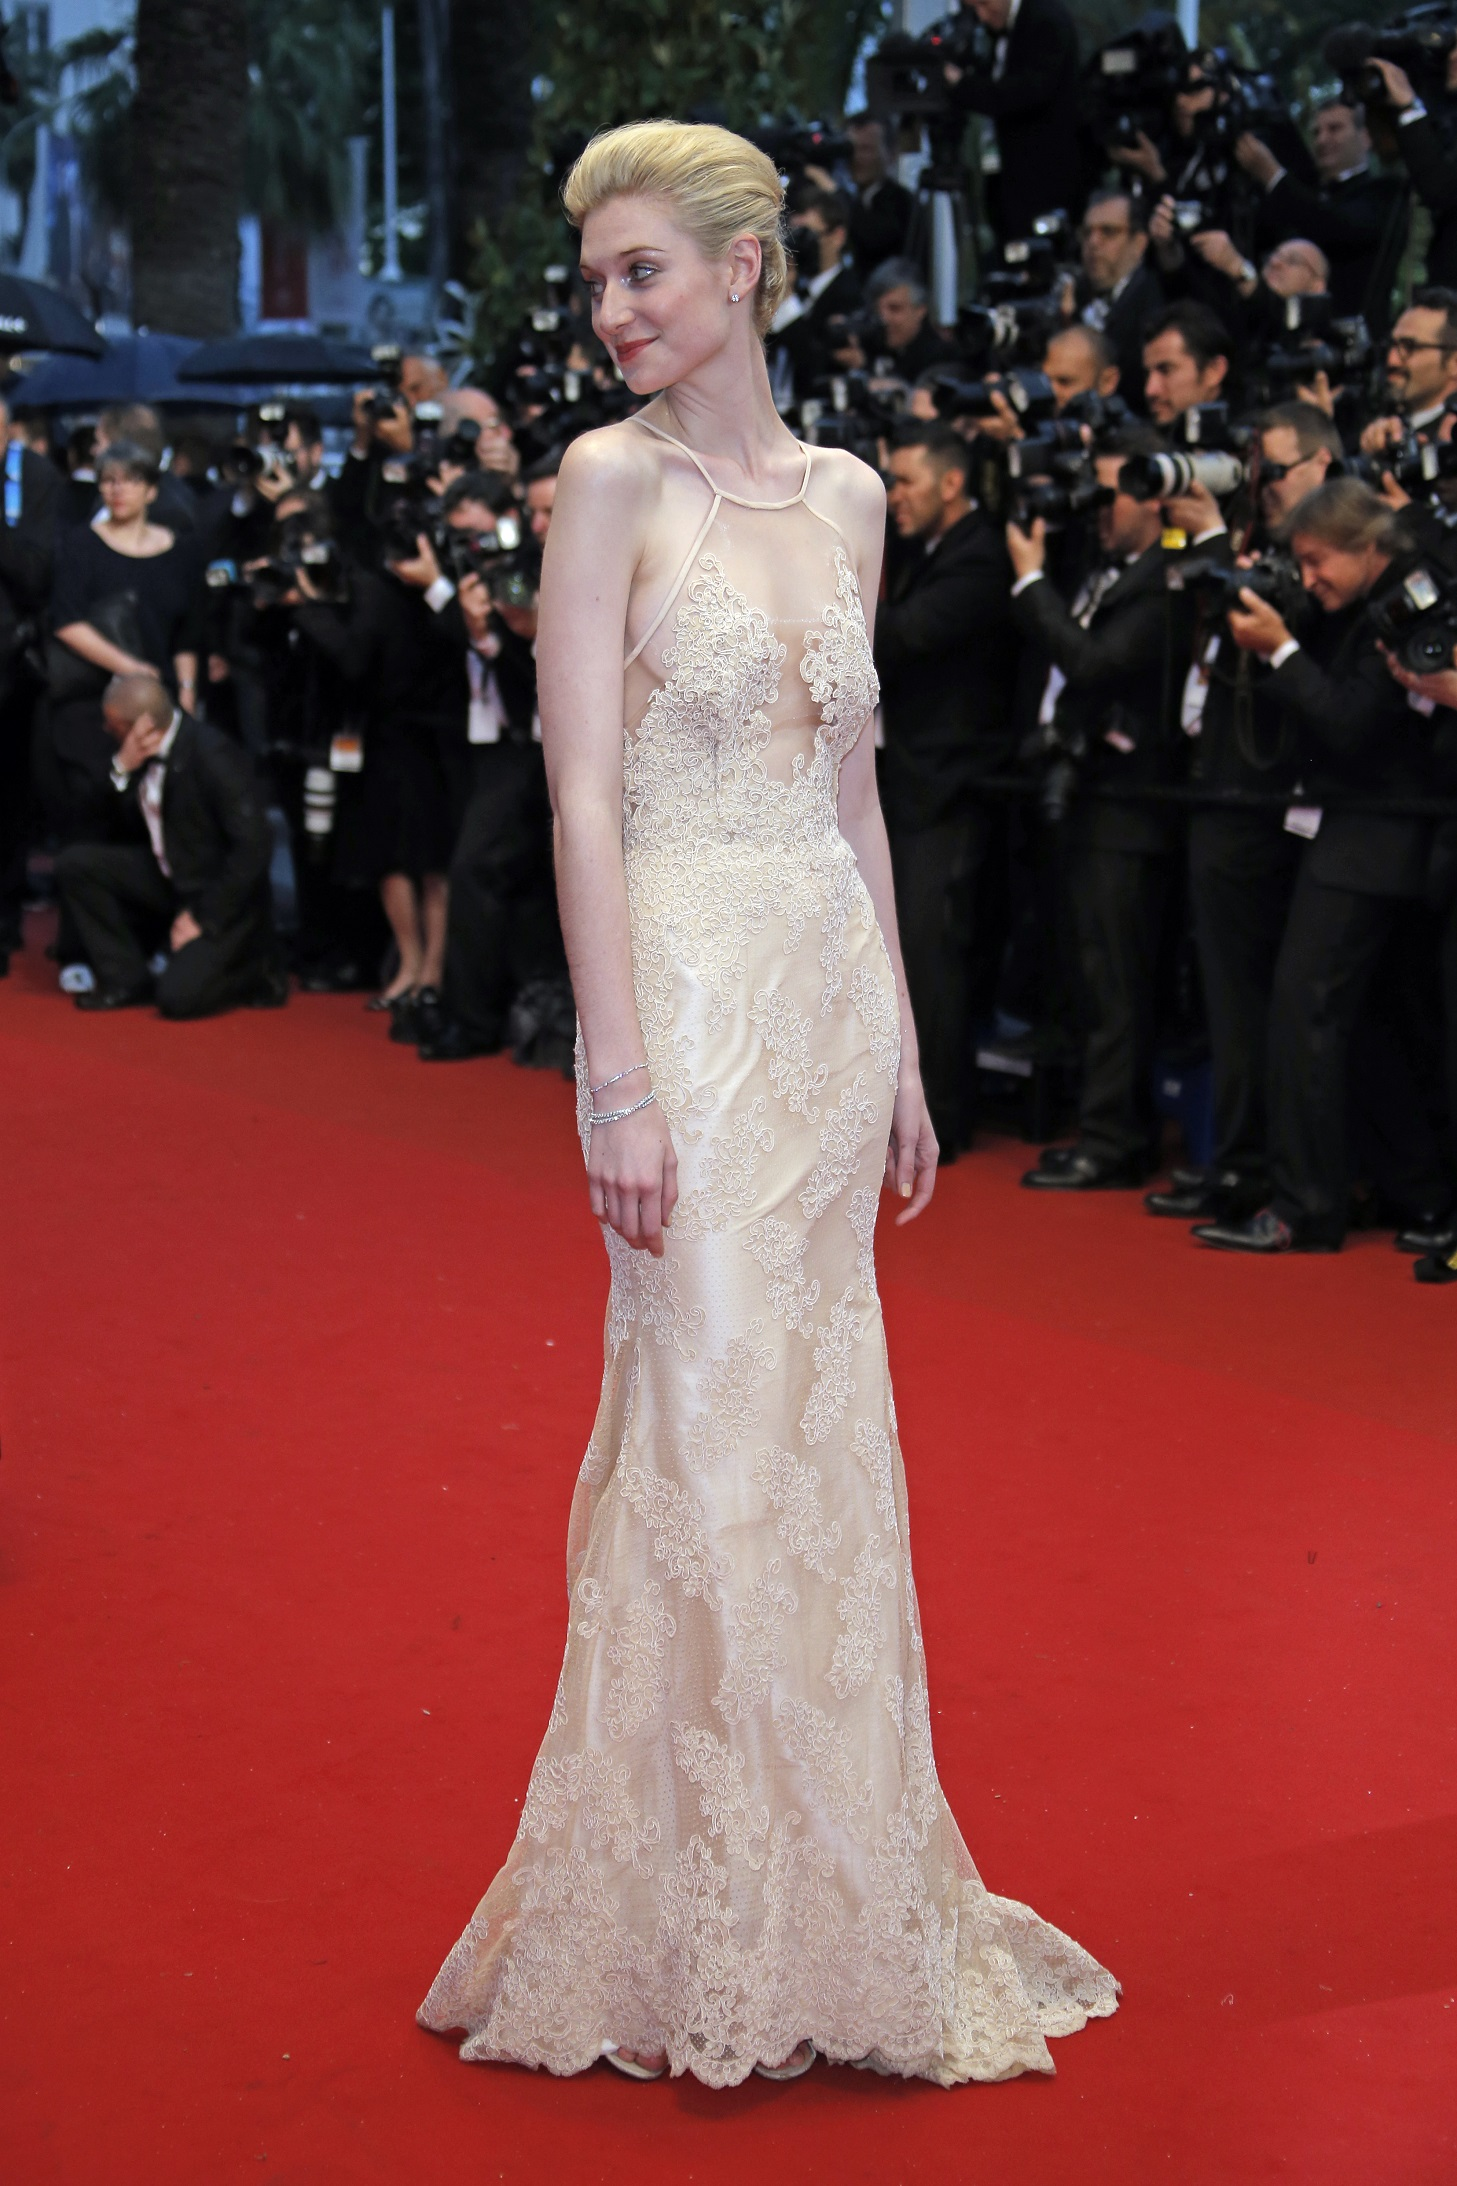 Actress Elizabeth Debicki arrives for the opening ceremony and the screening of The Great Gatsby at the 66th international film festival, in Cannes, southern France, Wednesday, May 15, 2013. (AP Photo/Francois Mori)